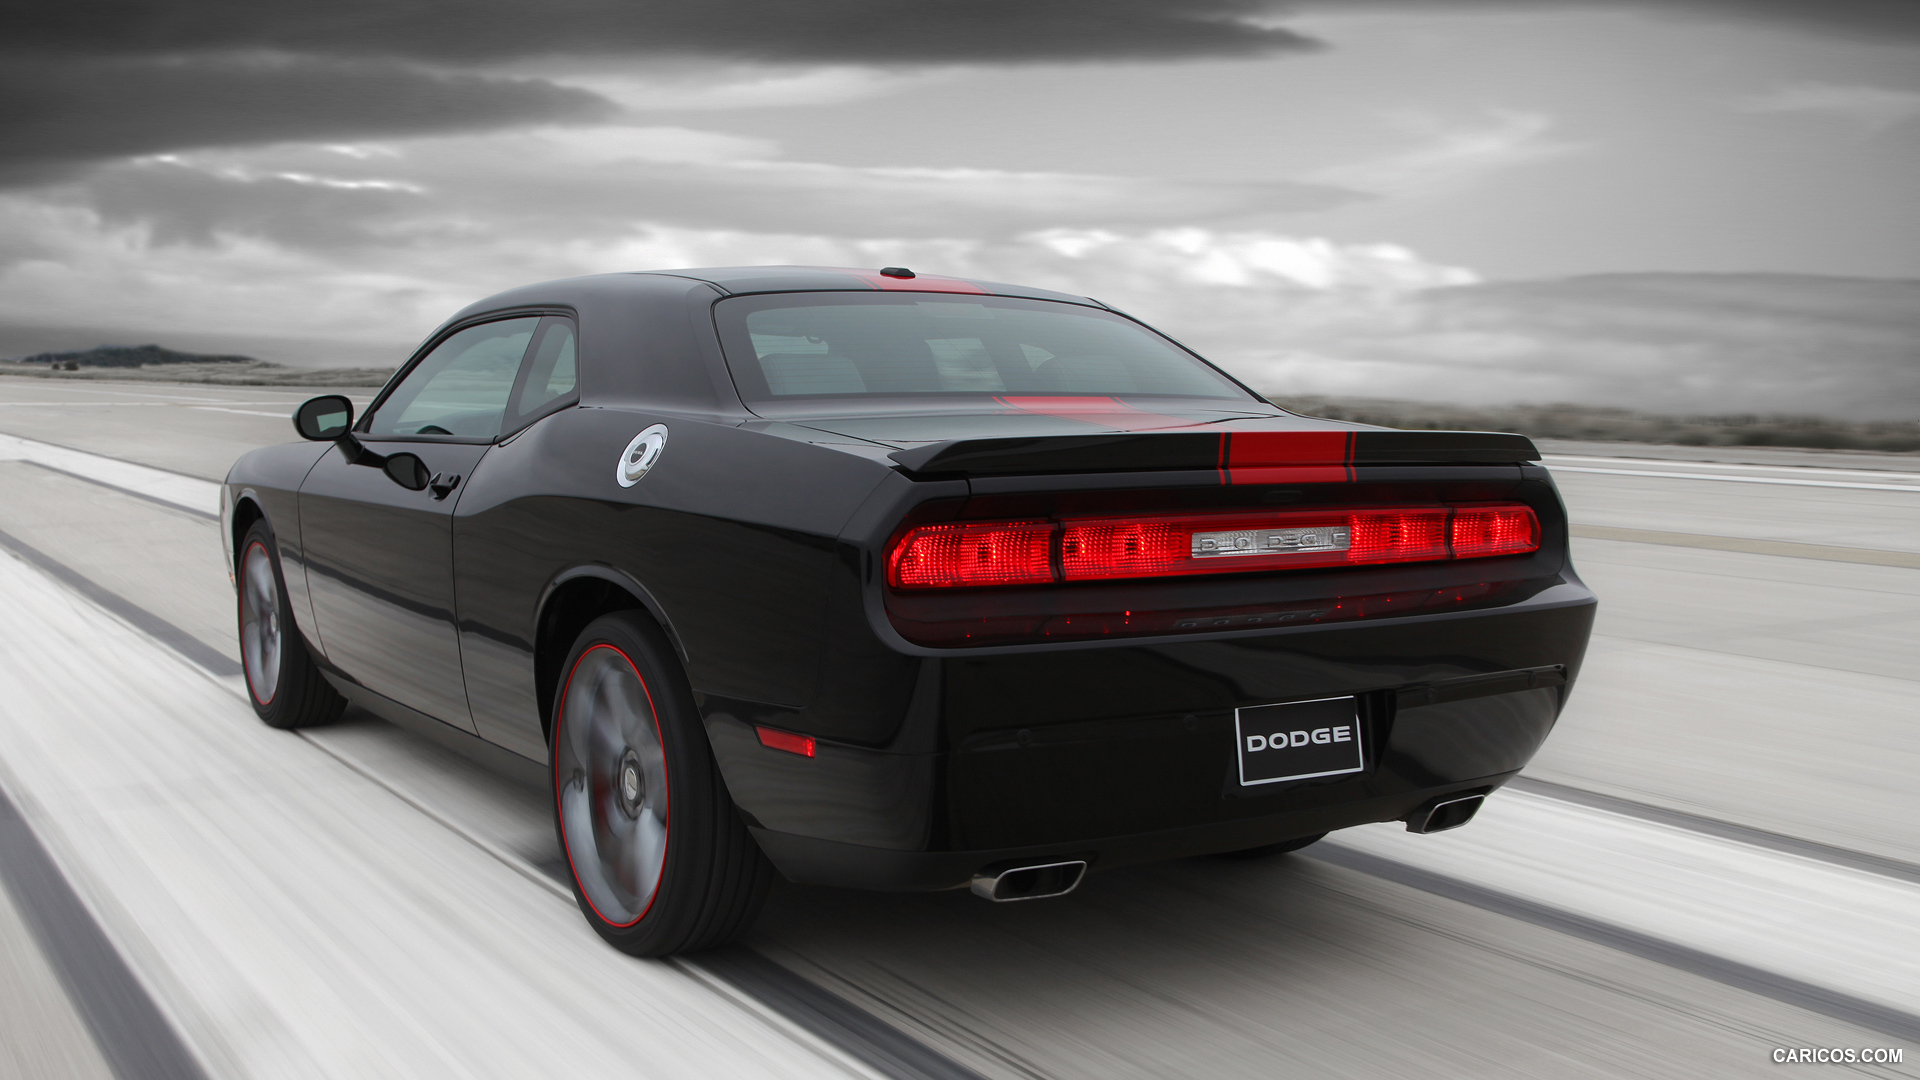 1920x1080 - Dodge Challenger Rallye Wallpapers 10